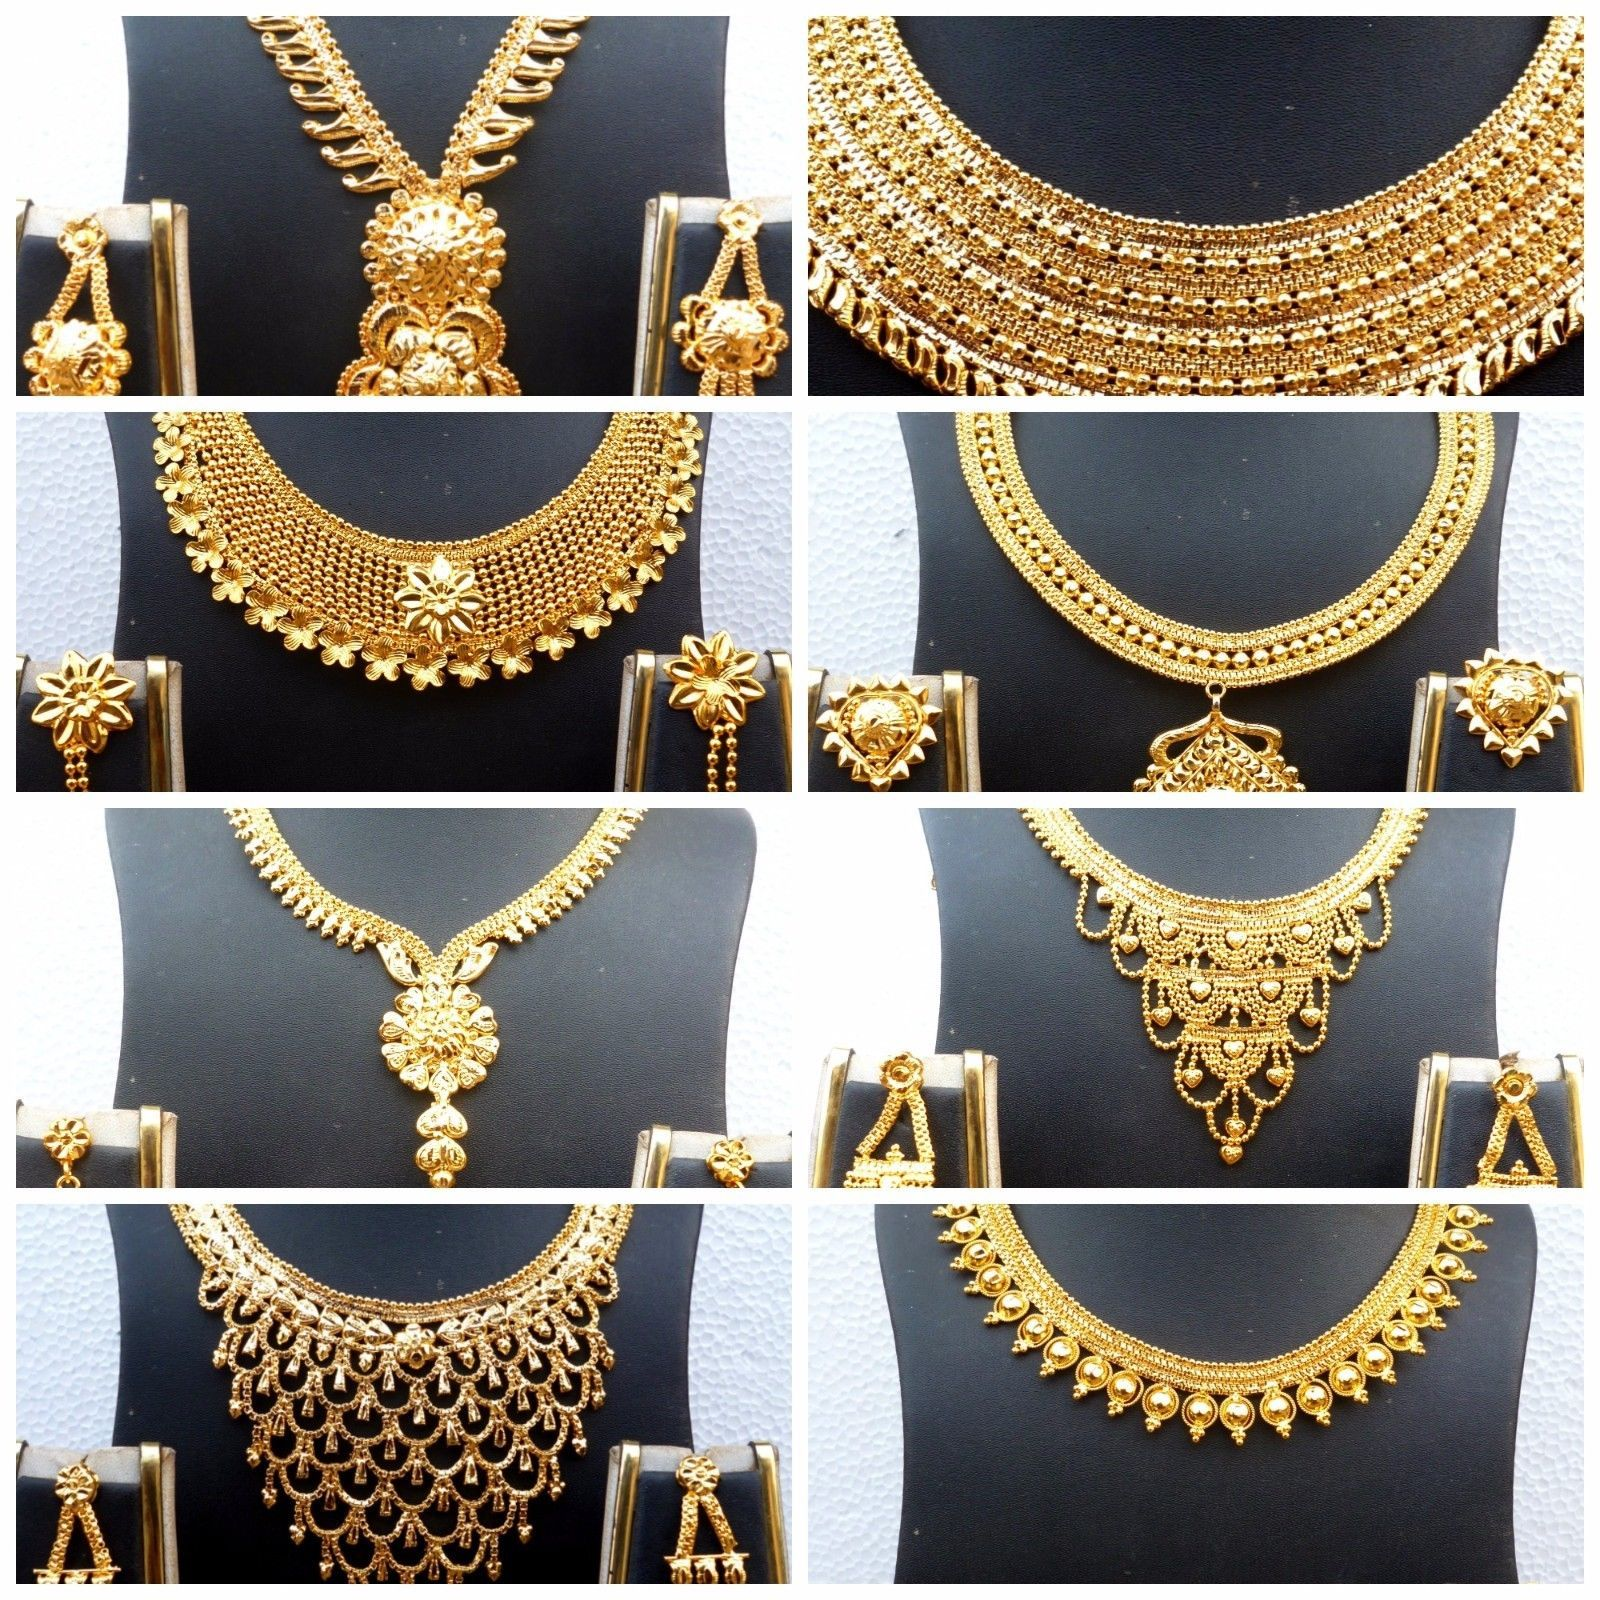 Indian 22k Gold Plated Wedding Necklace Earrings Jewelry: Indian 22K Gold Plated Party Necklace Earrings Set